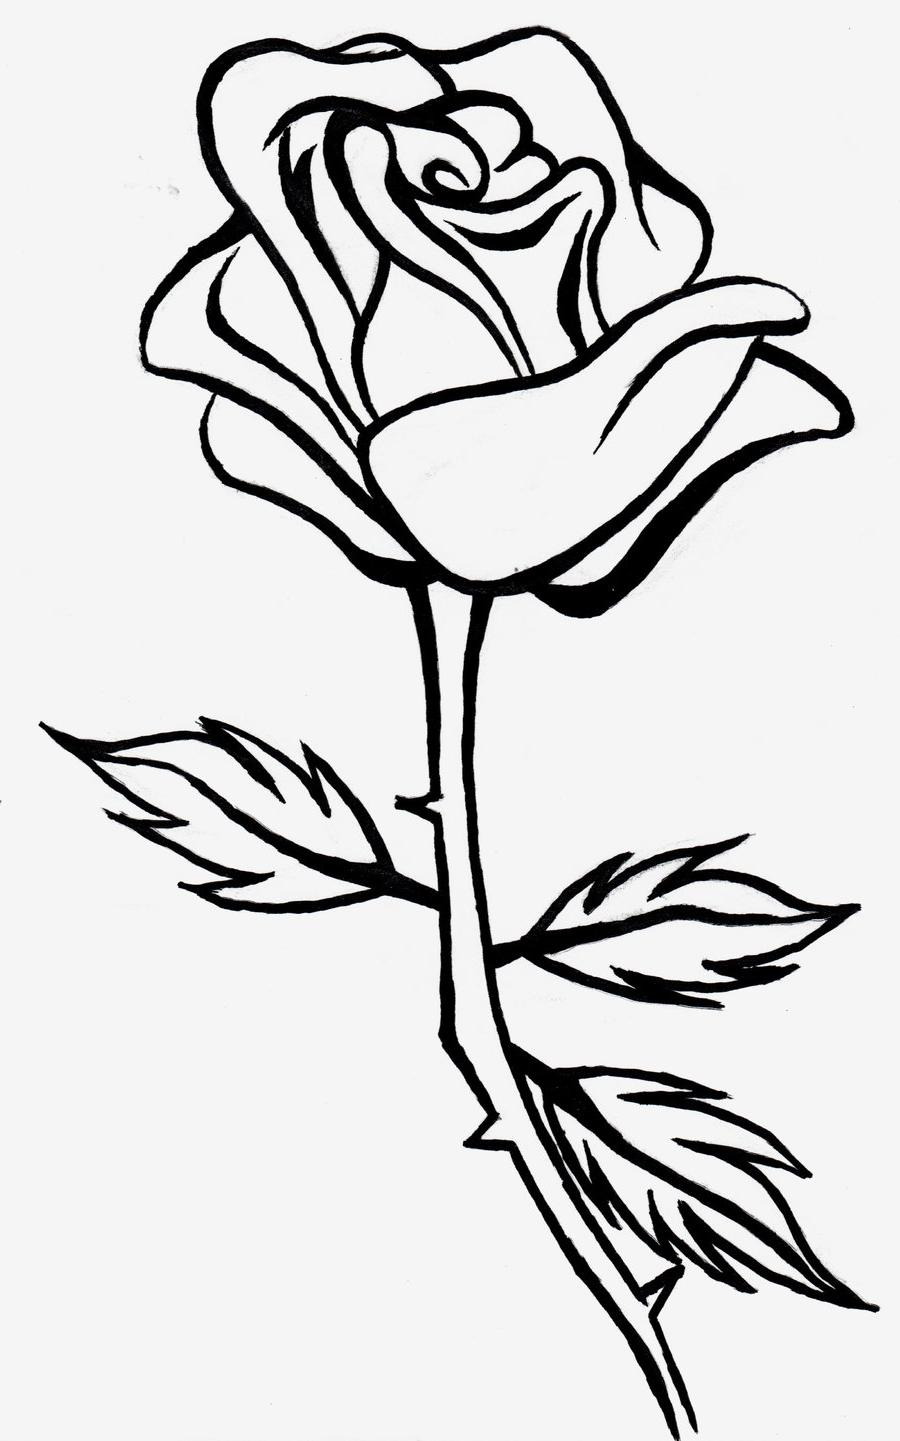 Simple Line Art Rose : Rose clipart black and white free download best